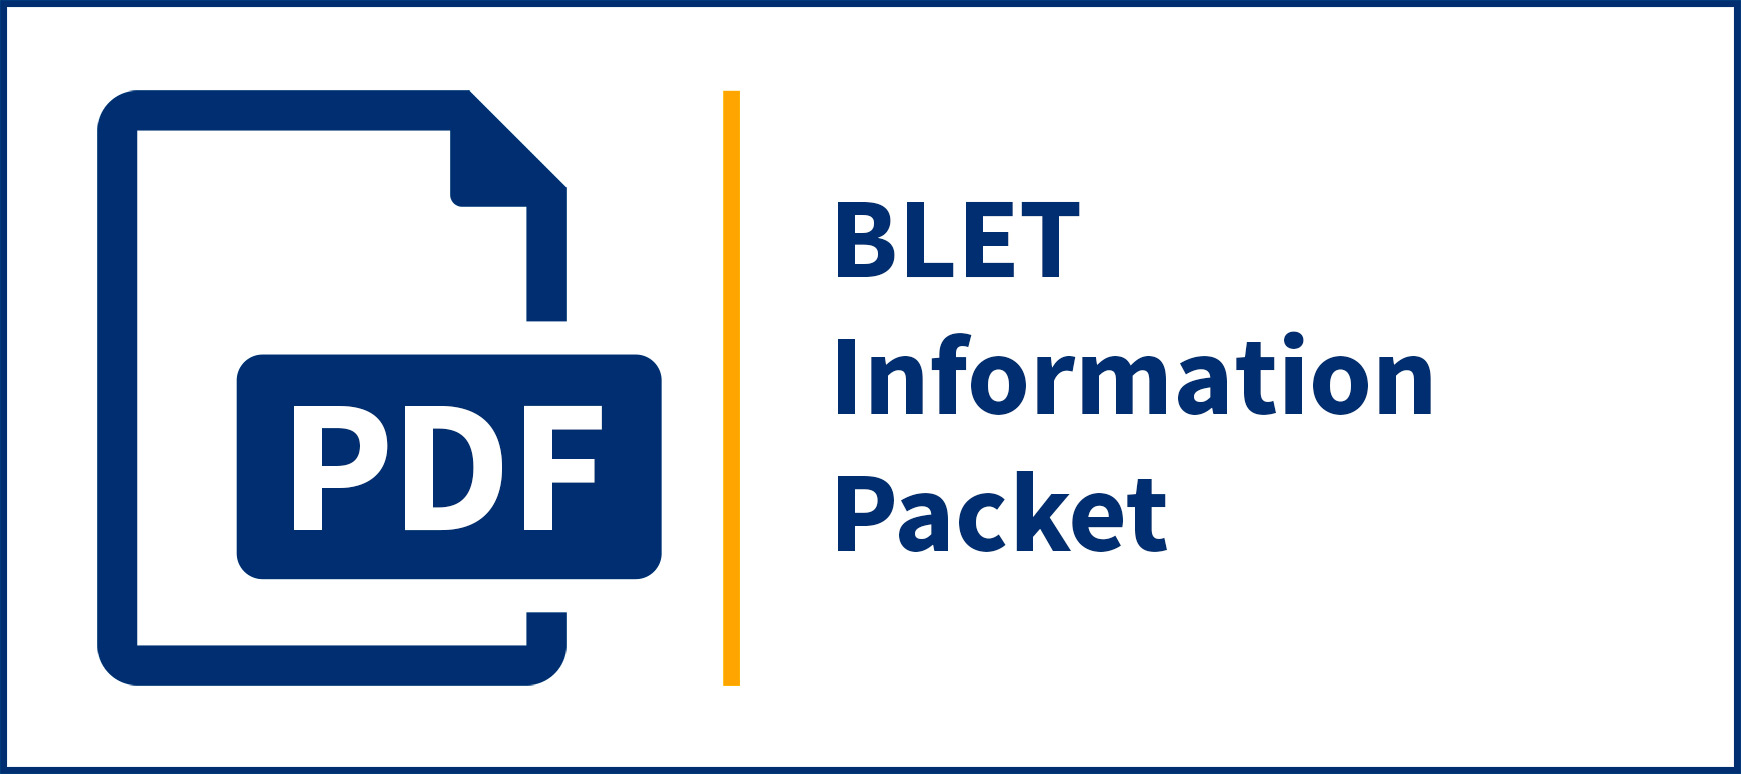 BLET Information Packet